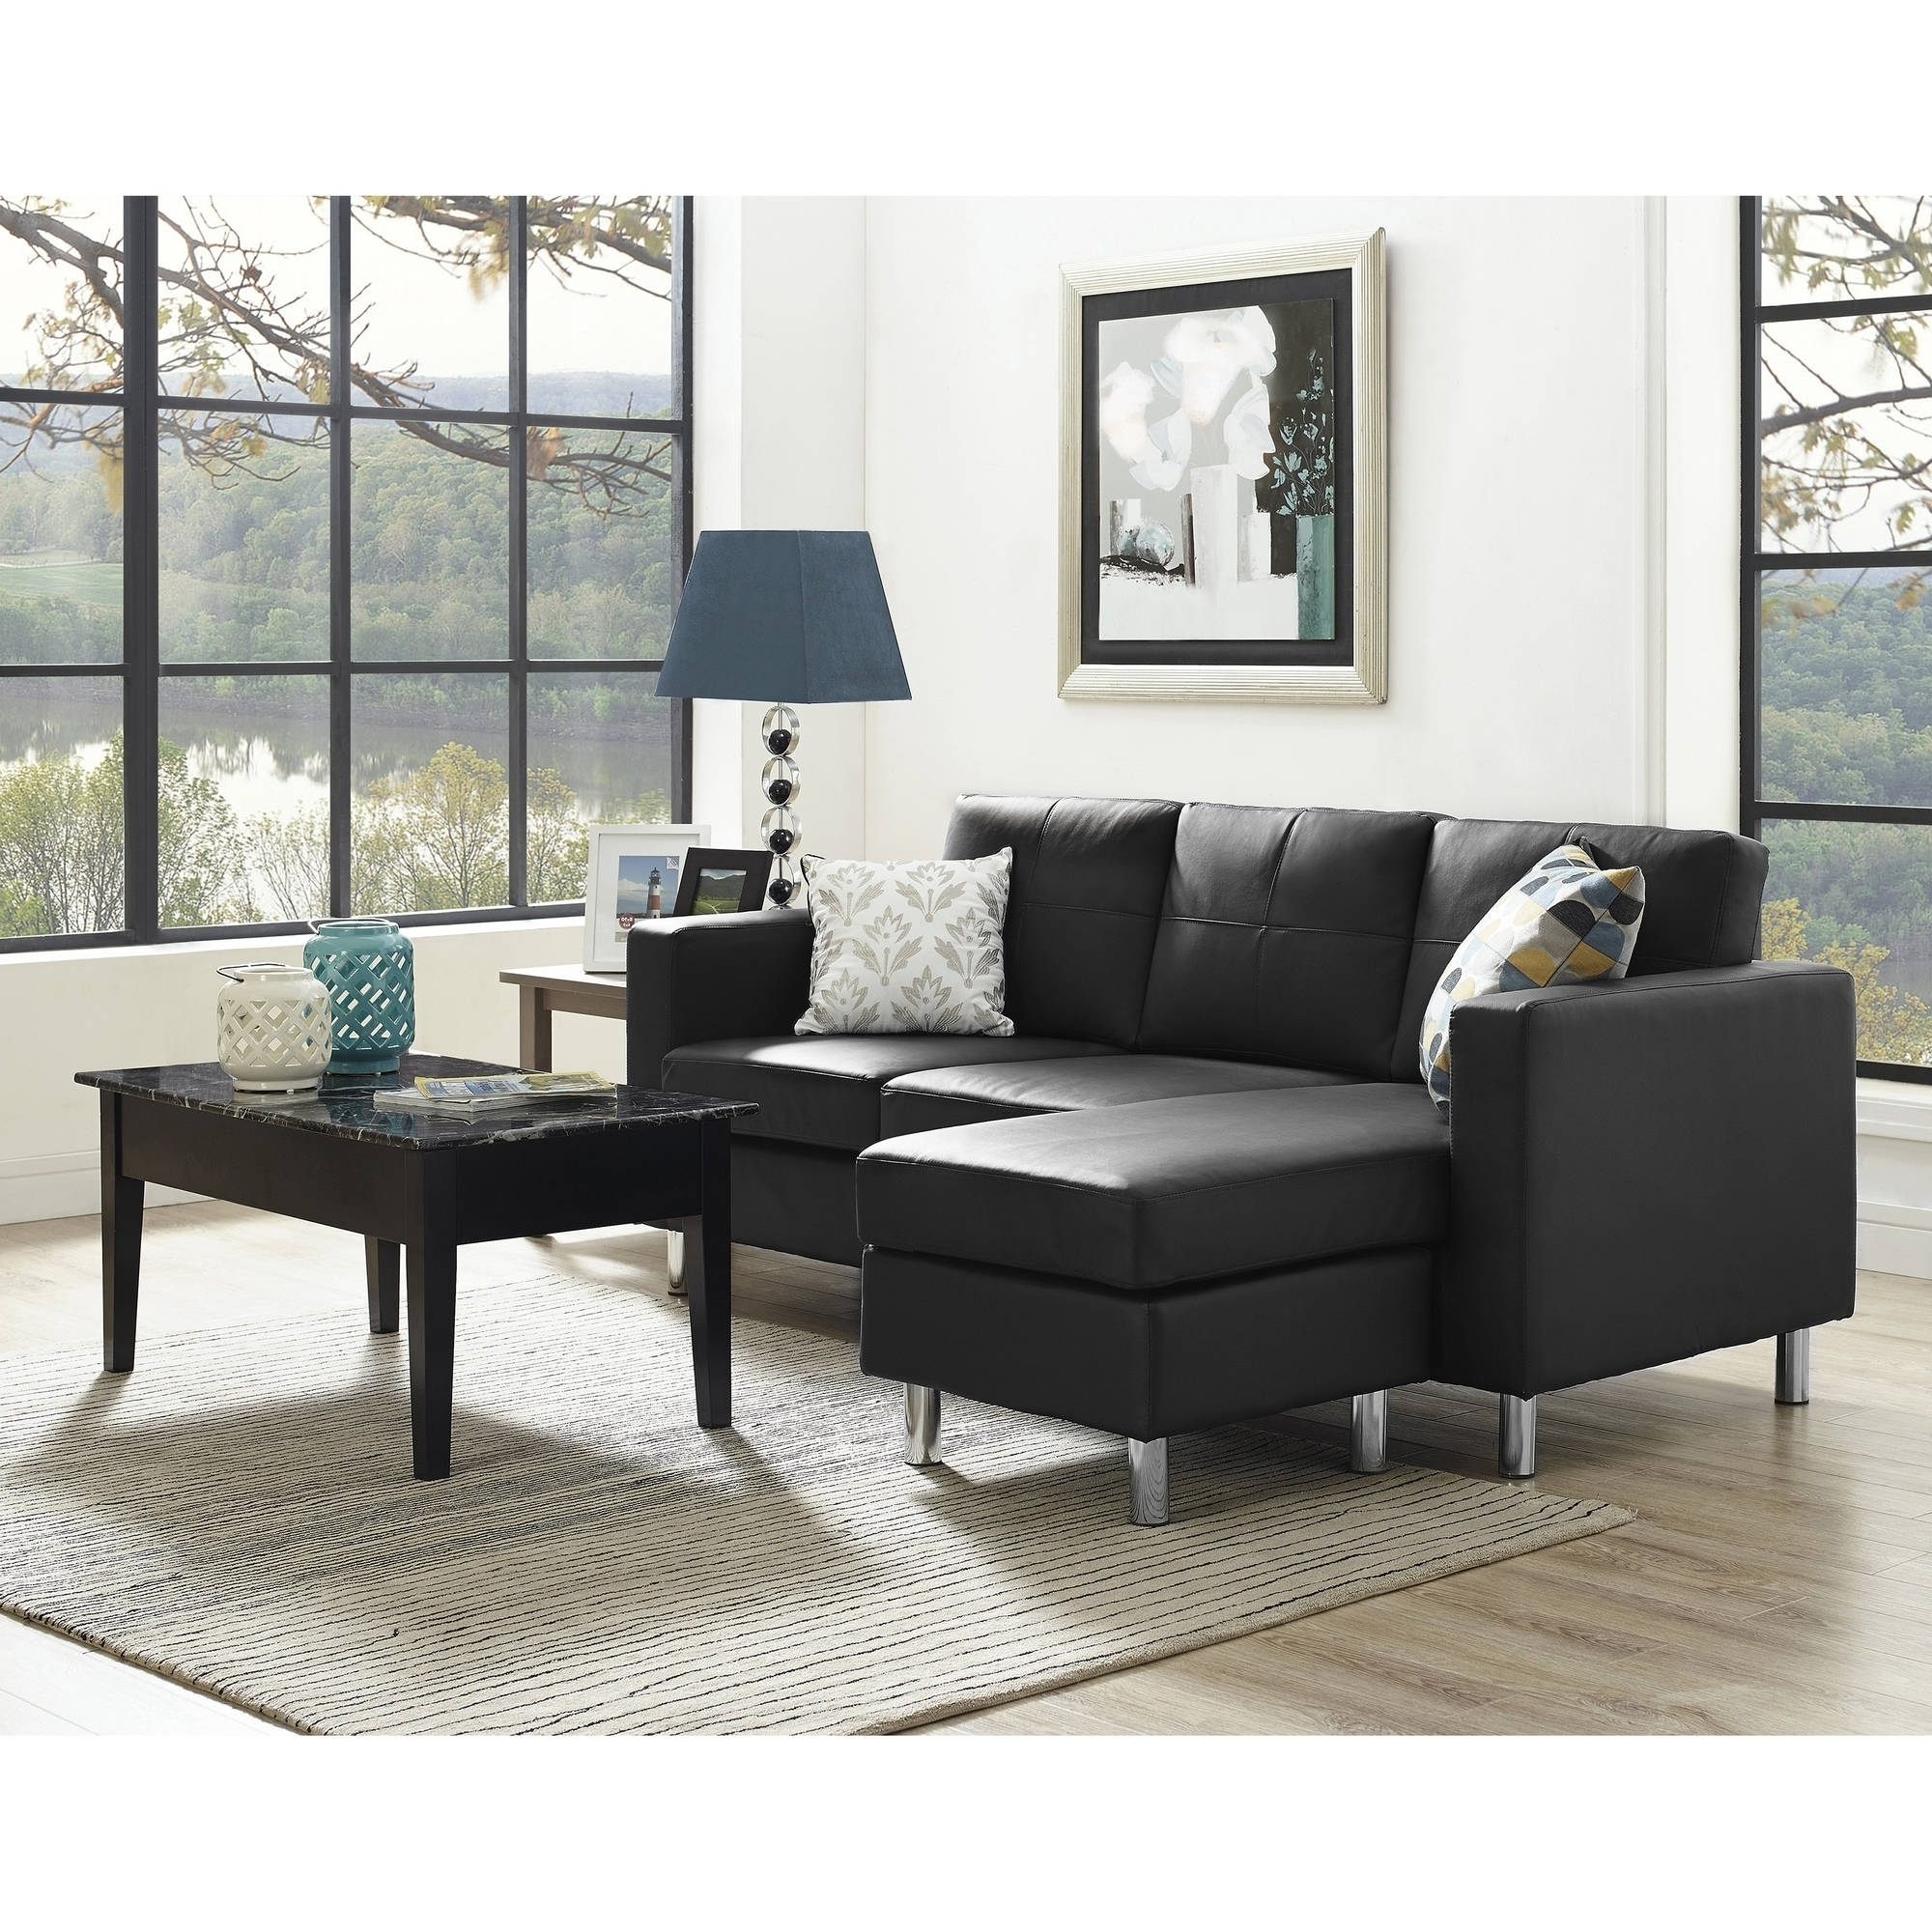 Www Regarding Sectional Sofas For Small Areas (View 6 of 15)